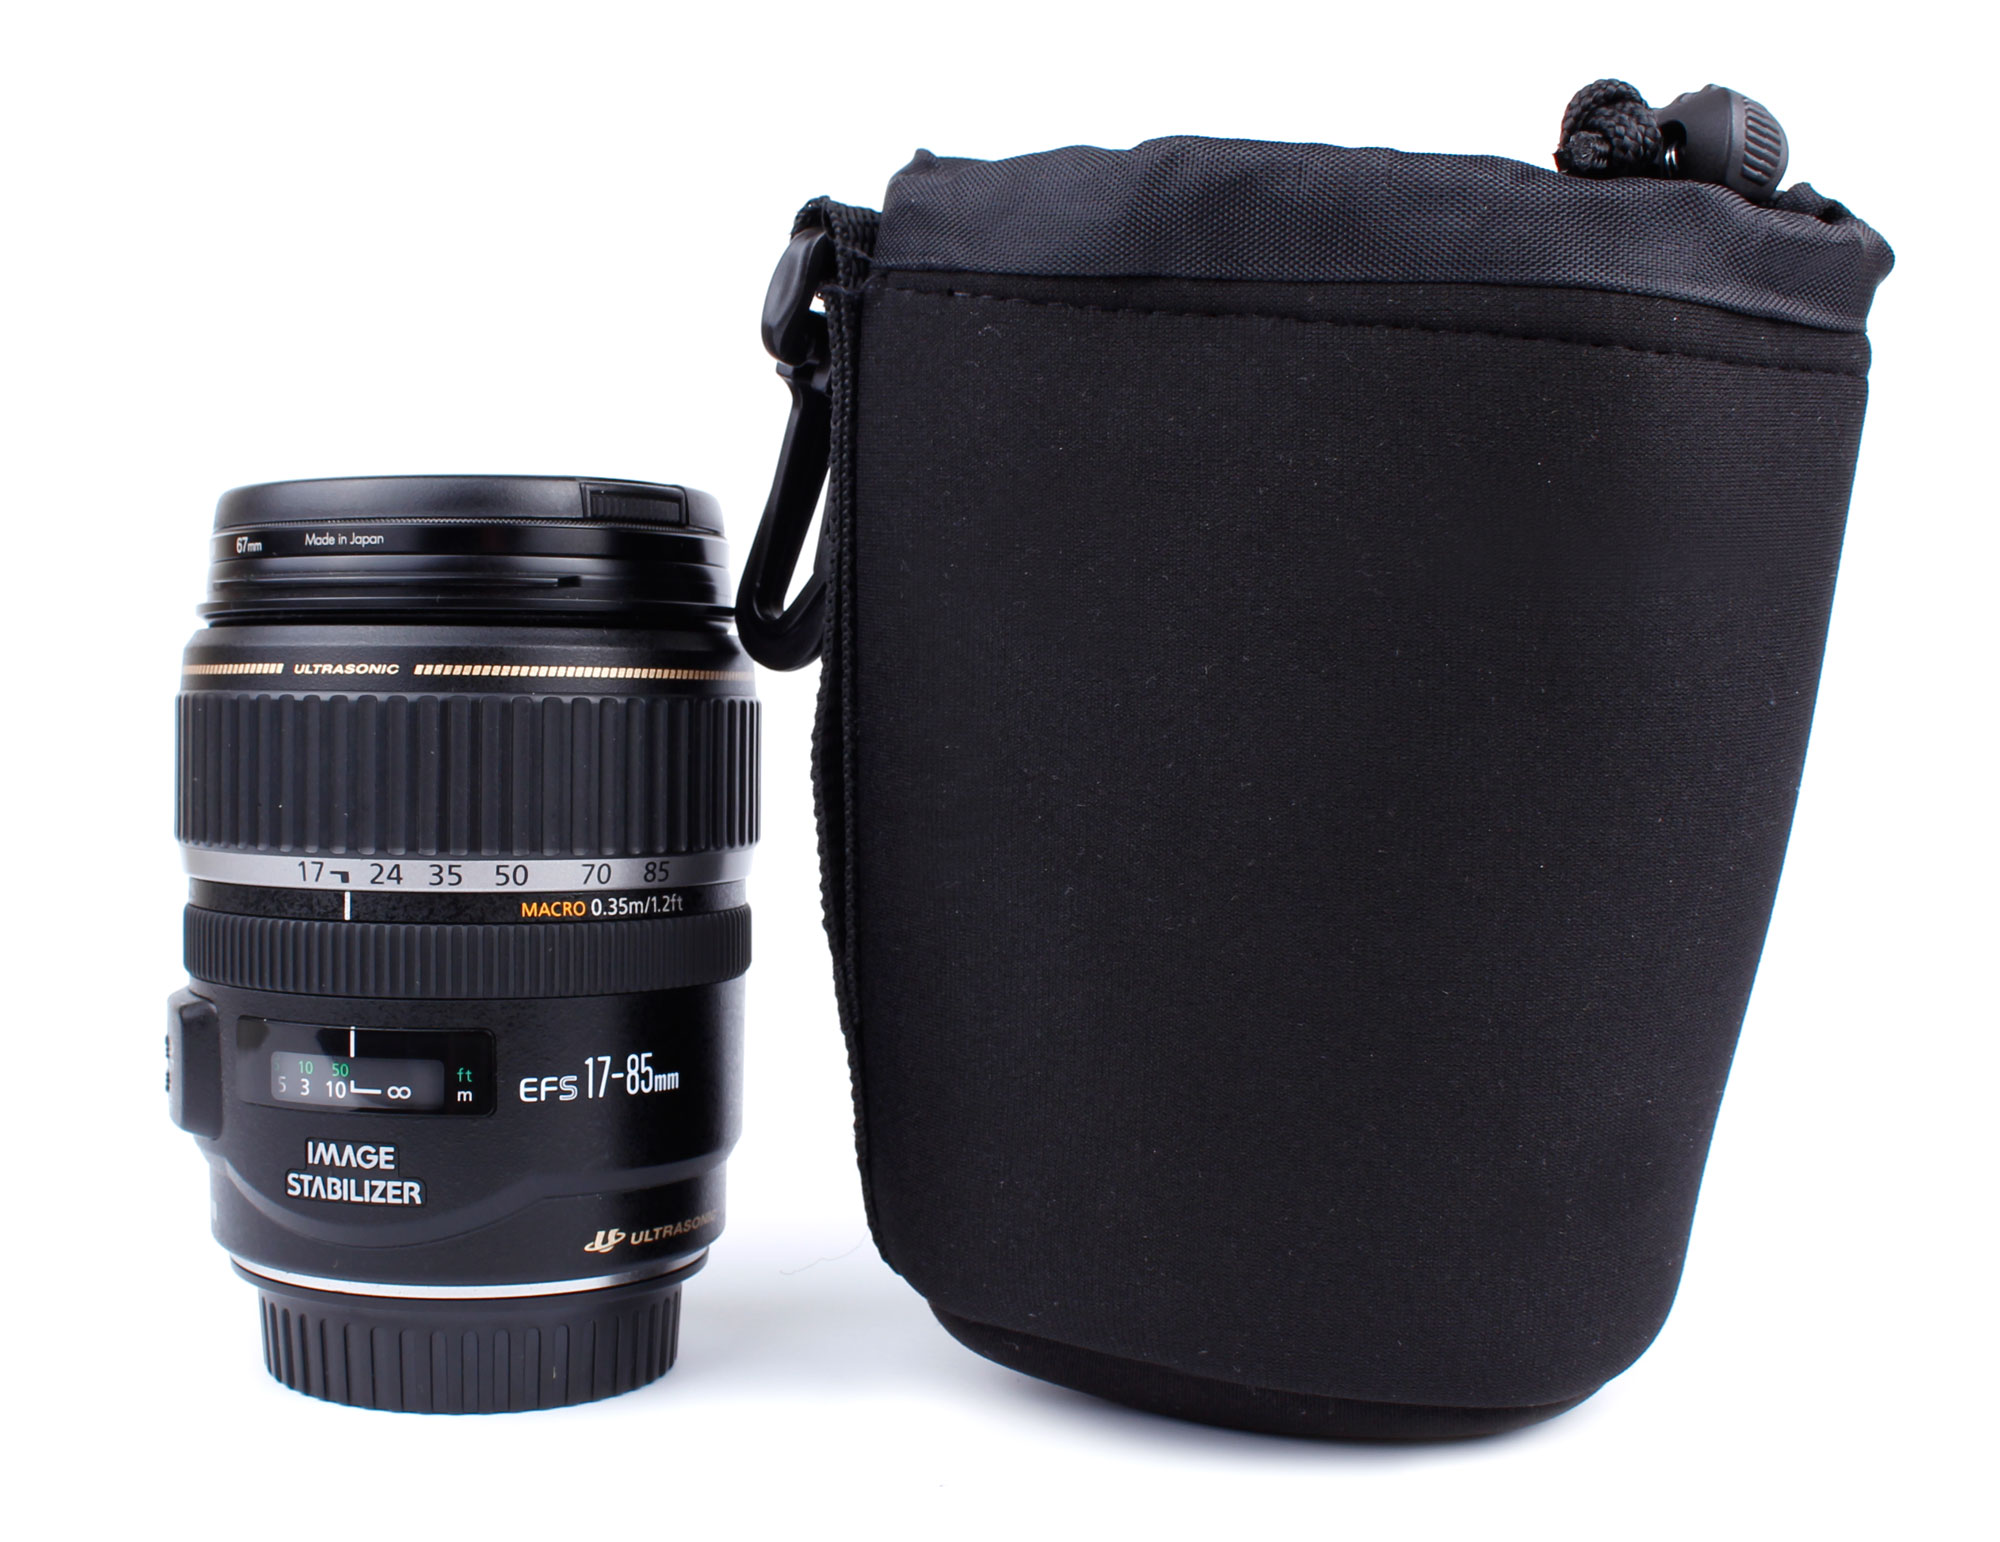 etui pour objectifs canon ef s 55 250 mm f 4 5 6 is ii et 24 105mm f 4l is usm ebay. Black Bedroom Furniture Sets. Home Design Ideas